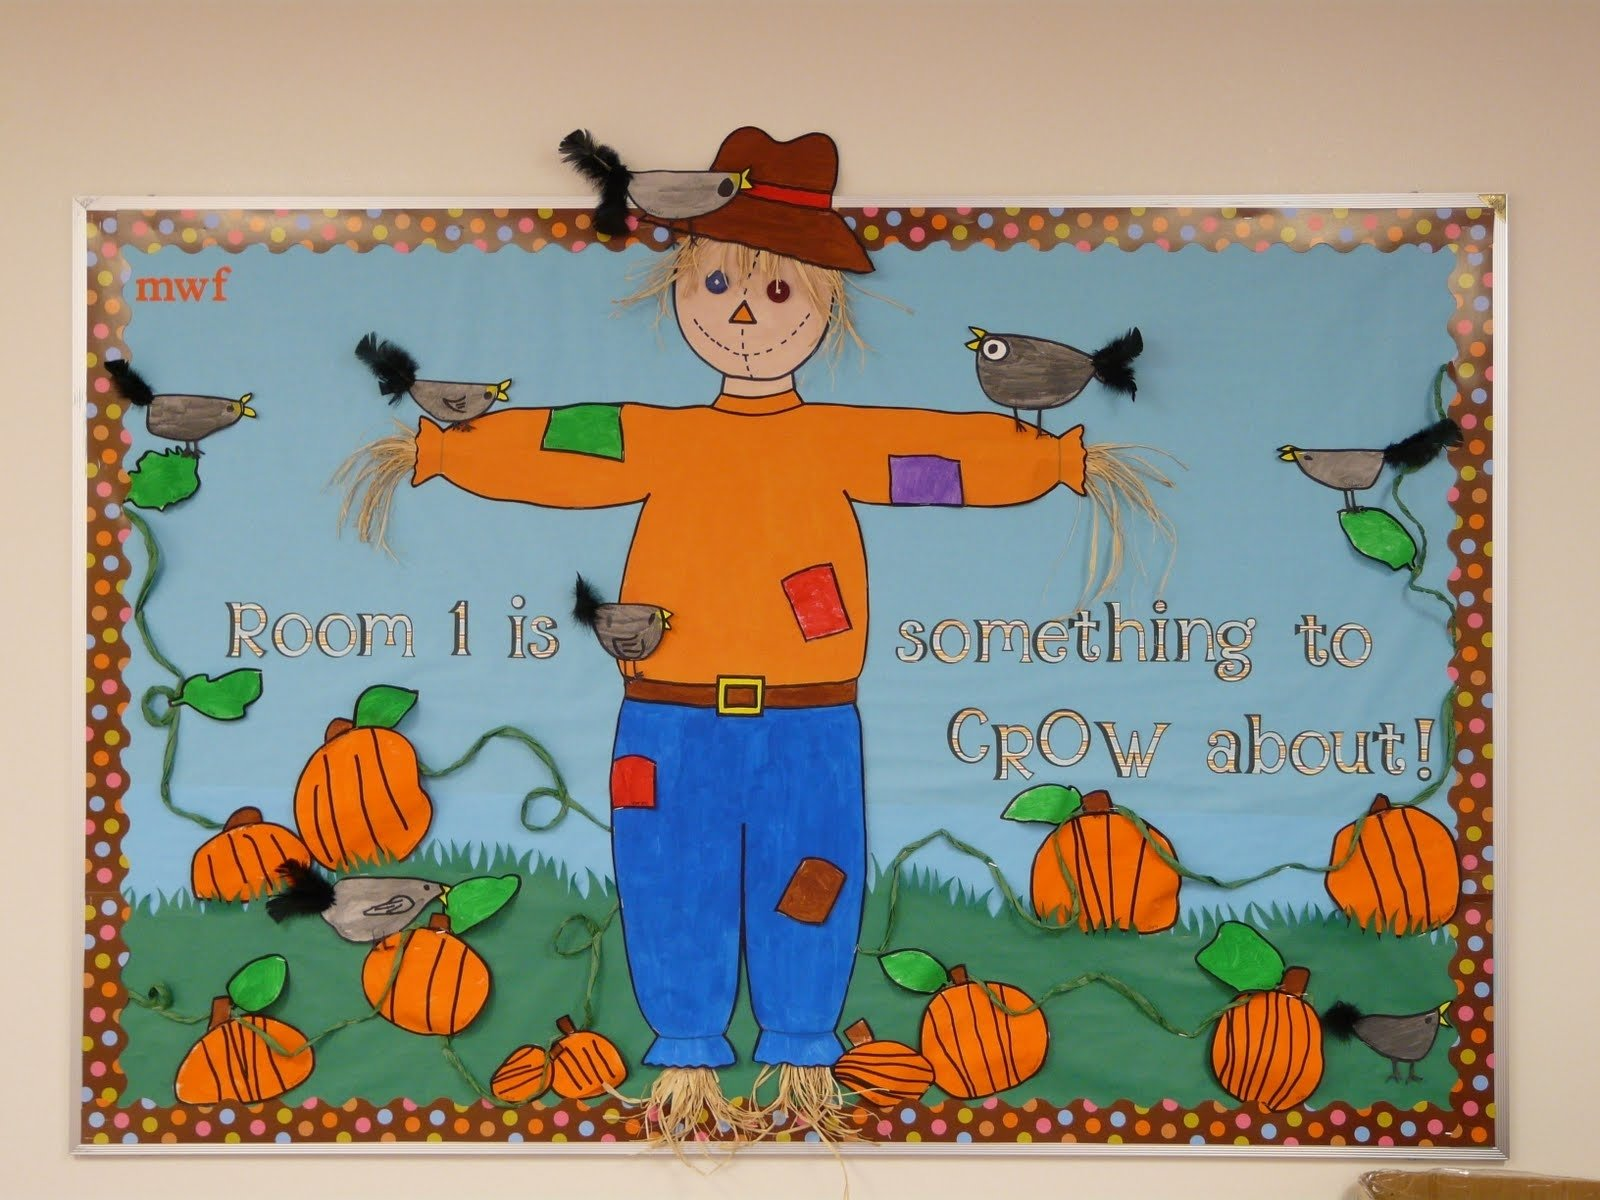 10 Famous Bulletin Board Ideas For November fall bulletin boards classroom ideas archives page of something to 3 2021